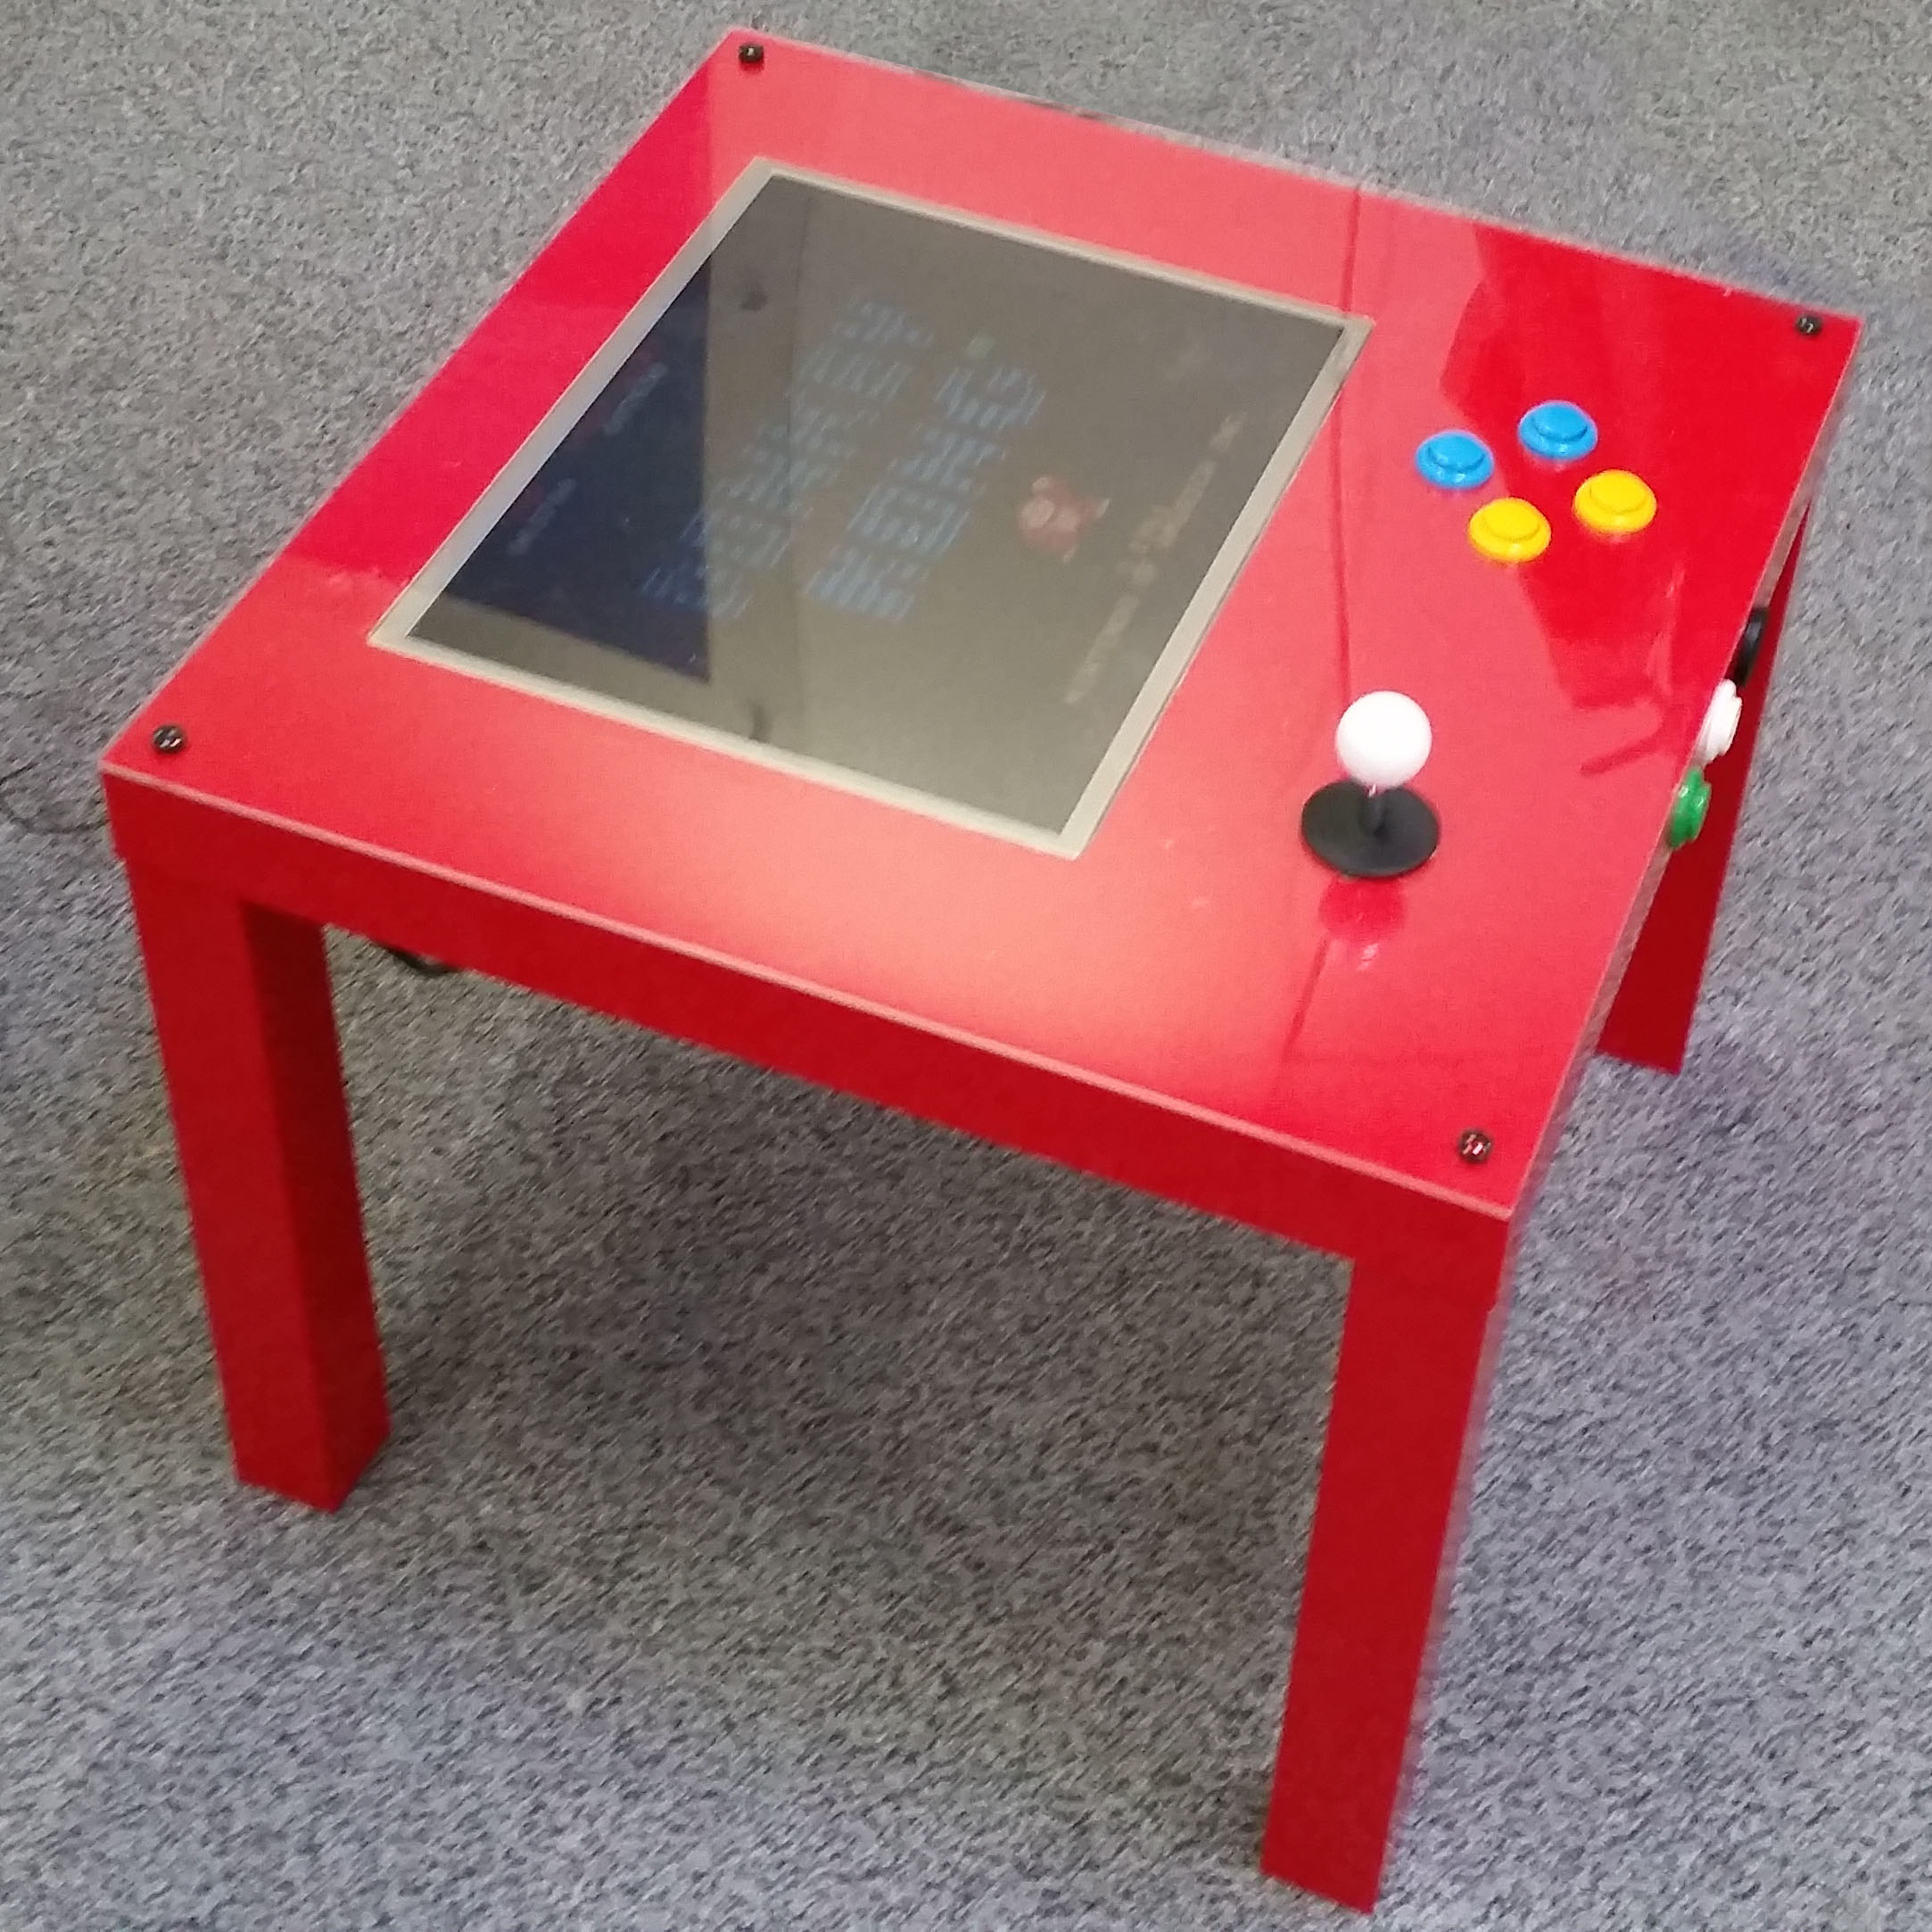 Table Basse Vintage Ikea A Raspberry Pi Ikea Arcade Table To Make Yourself Raspberry Pi